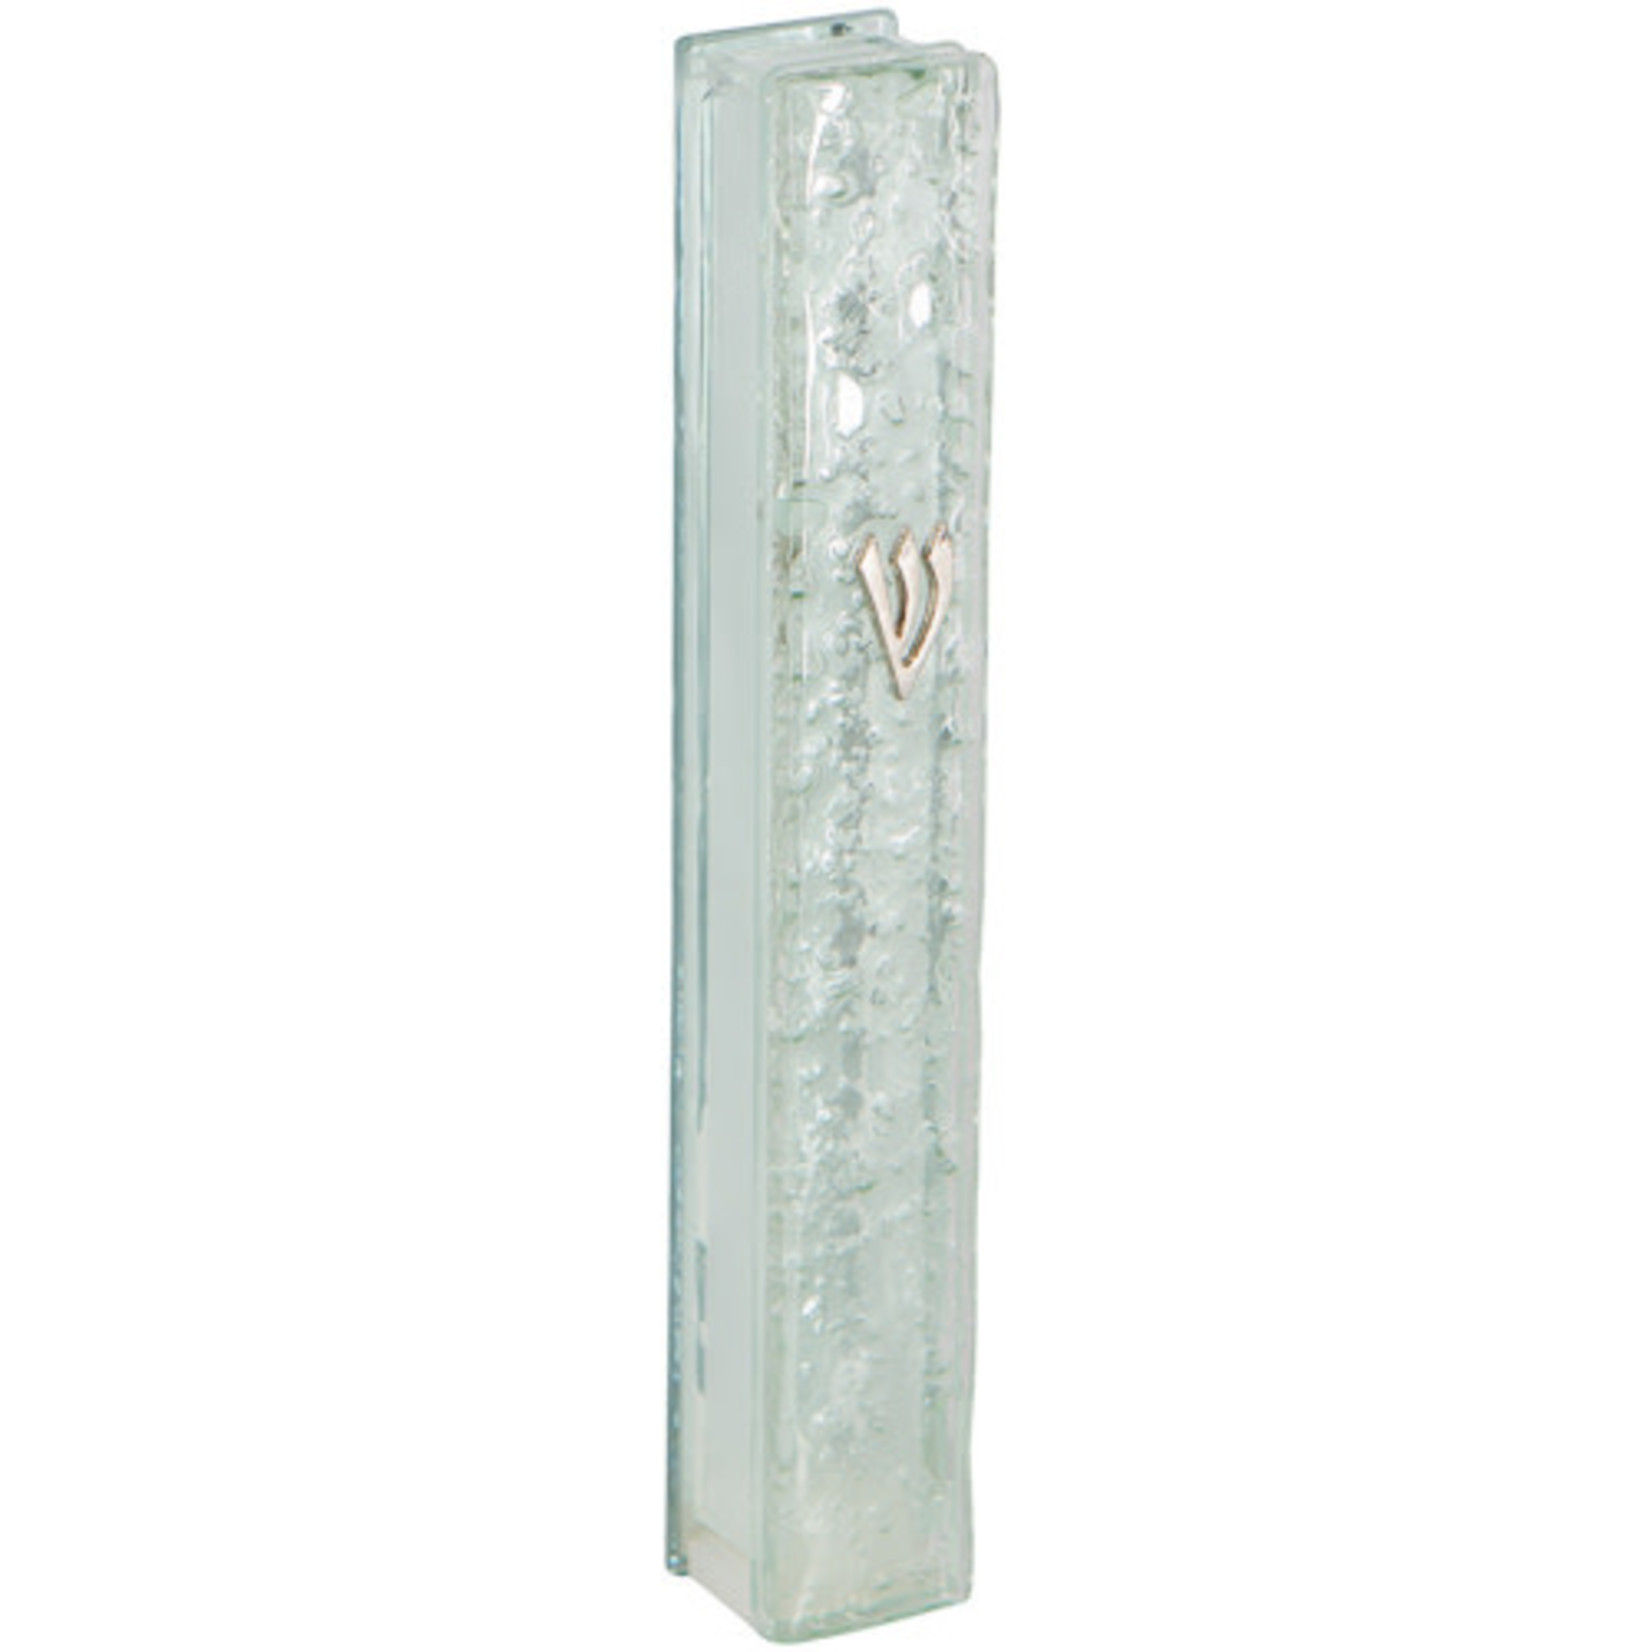 Mezuzah Case, Glass, 10cm